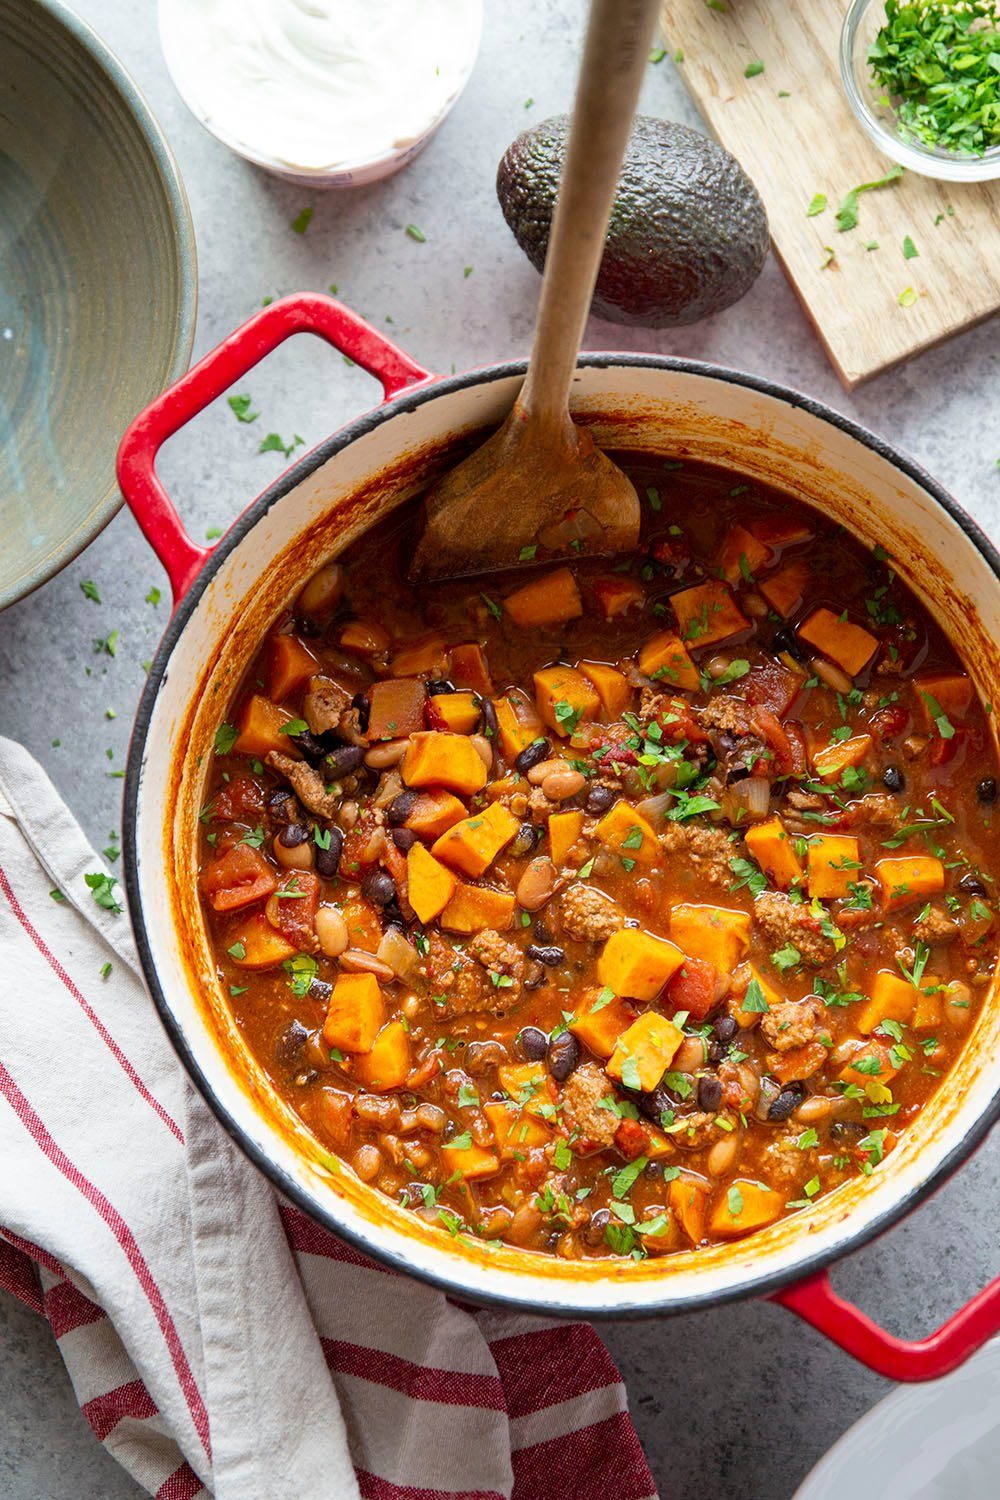 This chicken sweet potato chili packs a serious flavor punch! Packed with smoky chipotle peppers, ground chicken, tender sweet potatoes, and made easily in one pot.